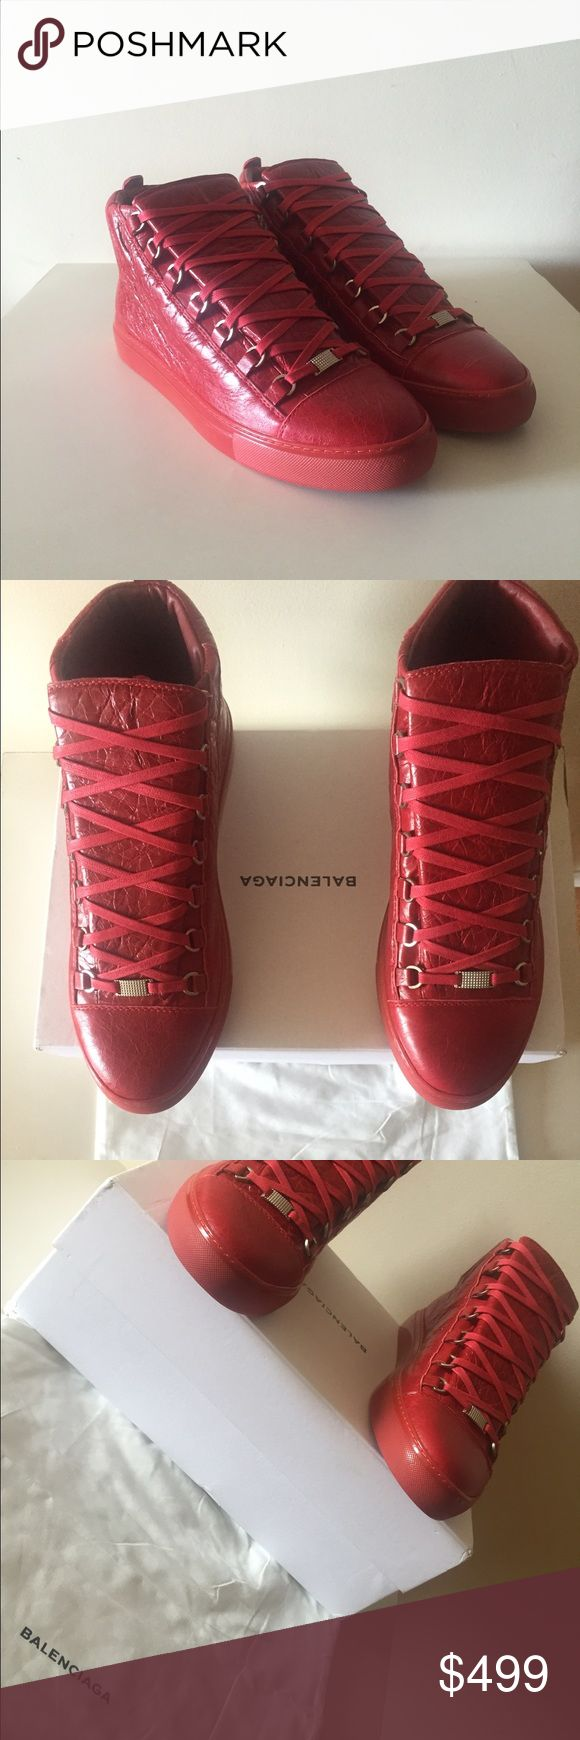 Balenciaga Arena Sneakers Red EU 44 Authentic Balenciaga Arena Sneakers Red EU 44 100% Authentic Guaranteed. Comes complete with boxing and dustbag.  If you like this, you'll definitely love my other listings. check em out ^_^ Balenciaga Shoes Sneakers